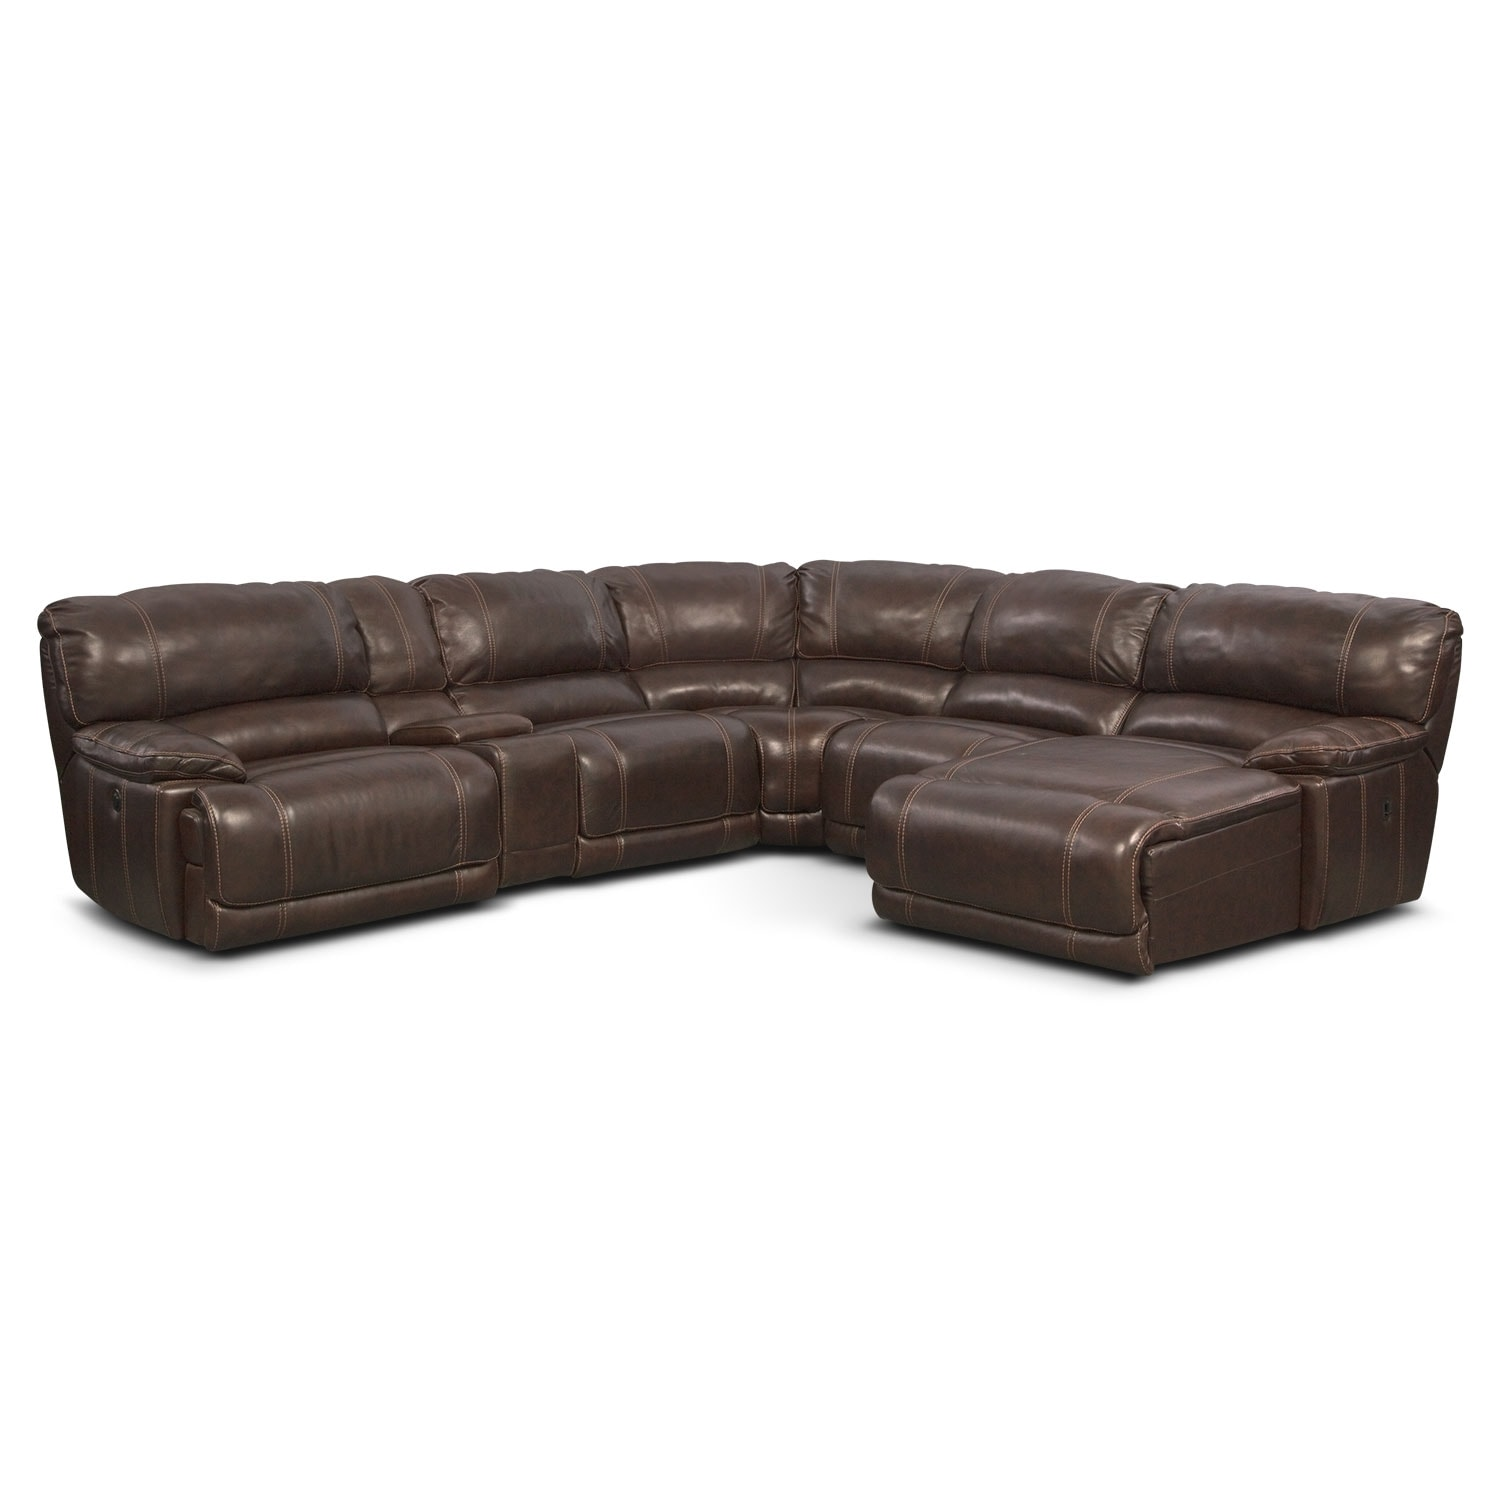 St. Malo 6-Piece Power Reclining Sectional with Right-Facing Chaise - Brown